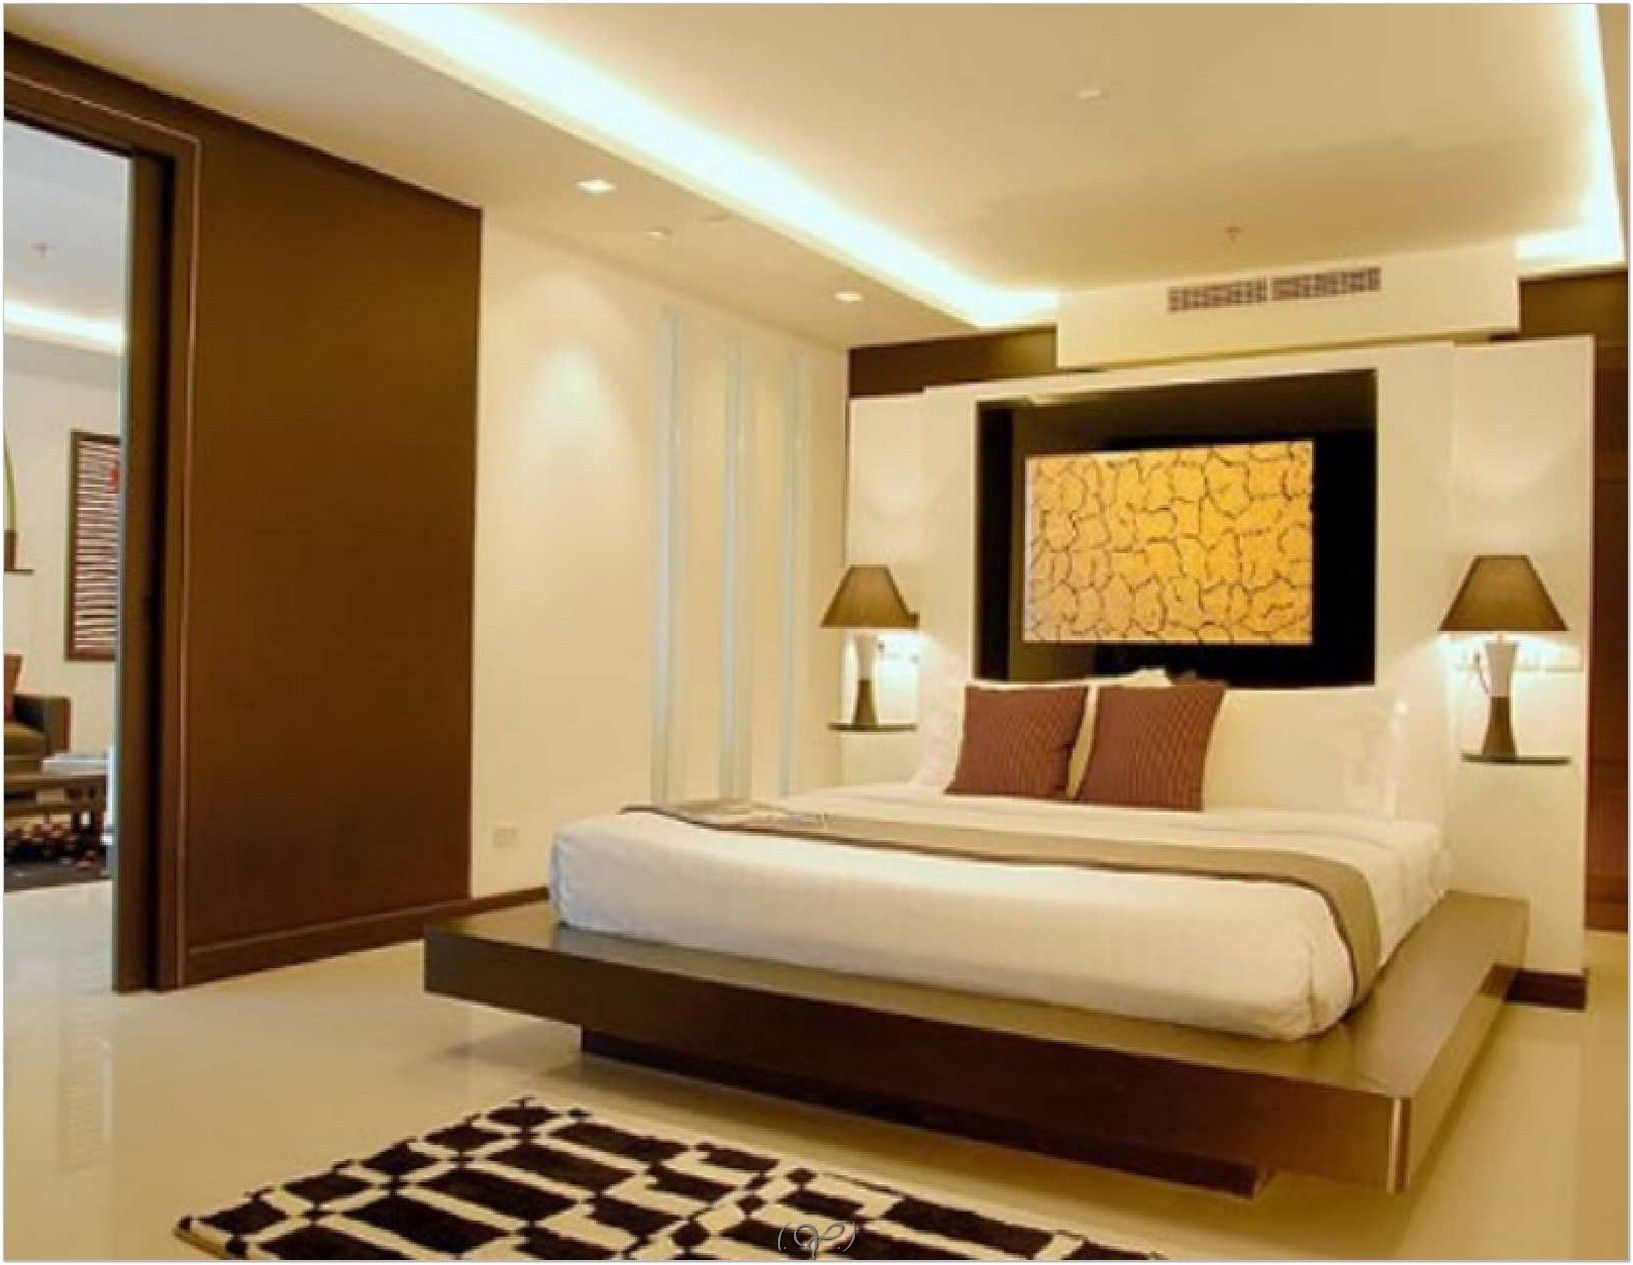 False Ceiling Ideas For Small Bedroom | Simple bedroom ...